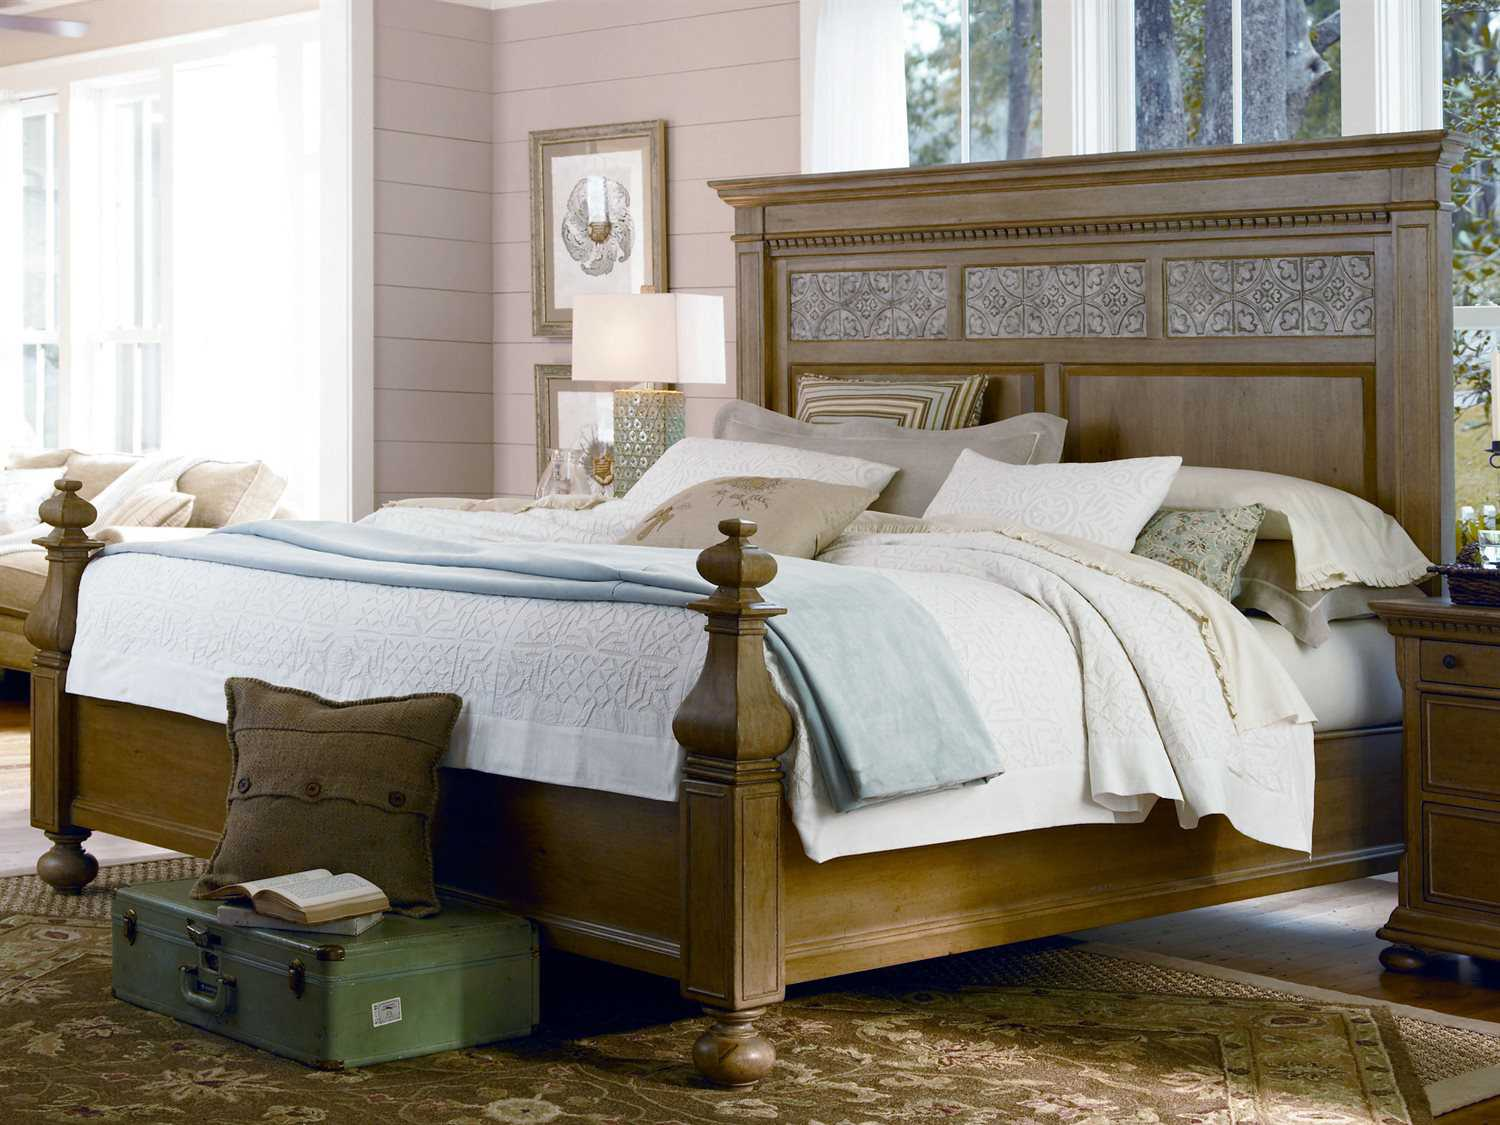 paula deen home down home oatmeal aunt peggy bedroom set